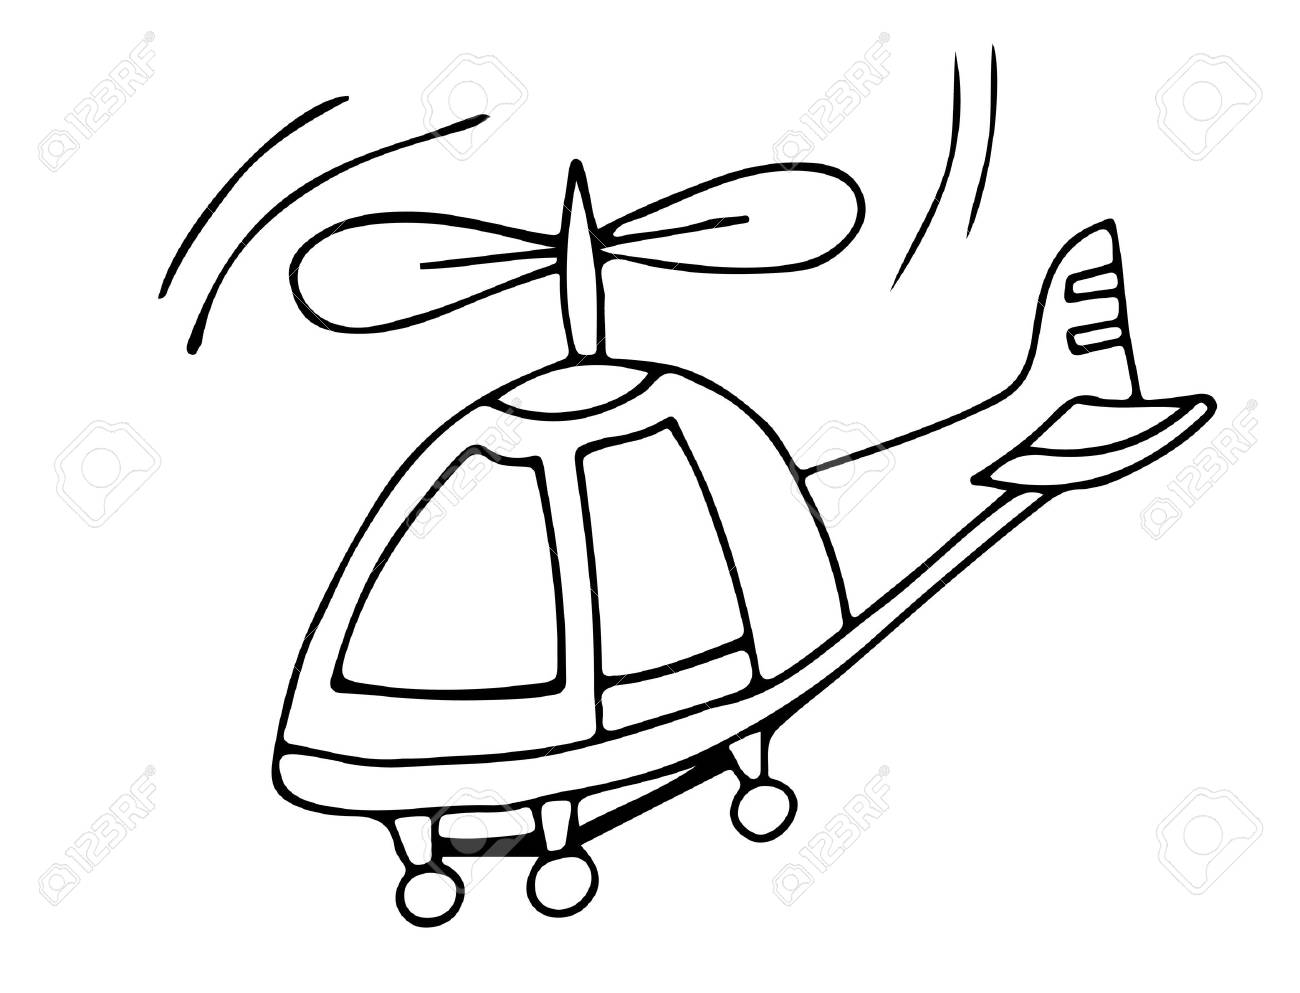 Helicopter Clipart Black.